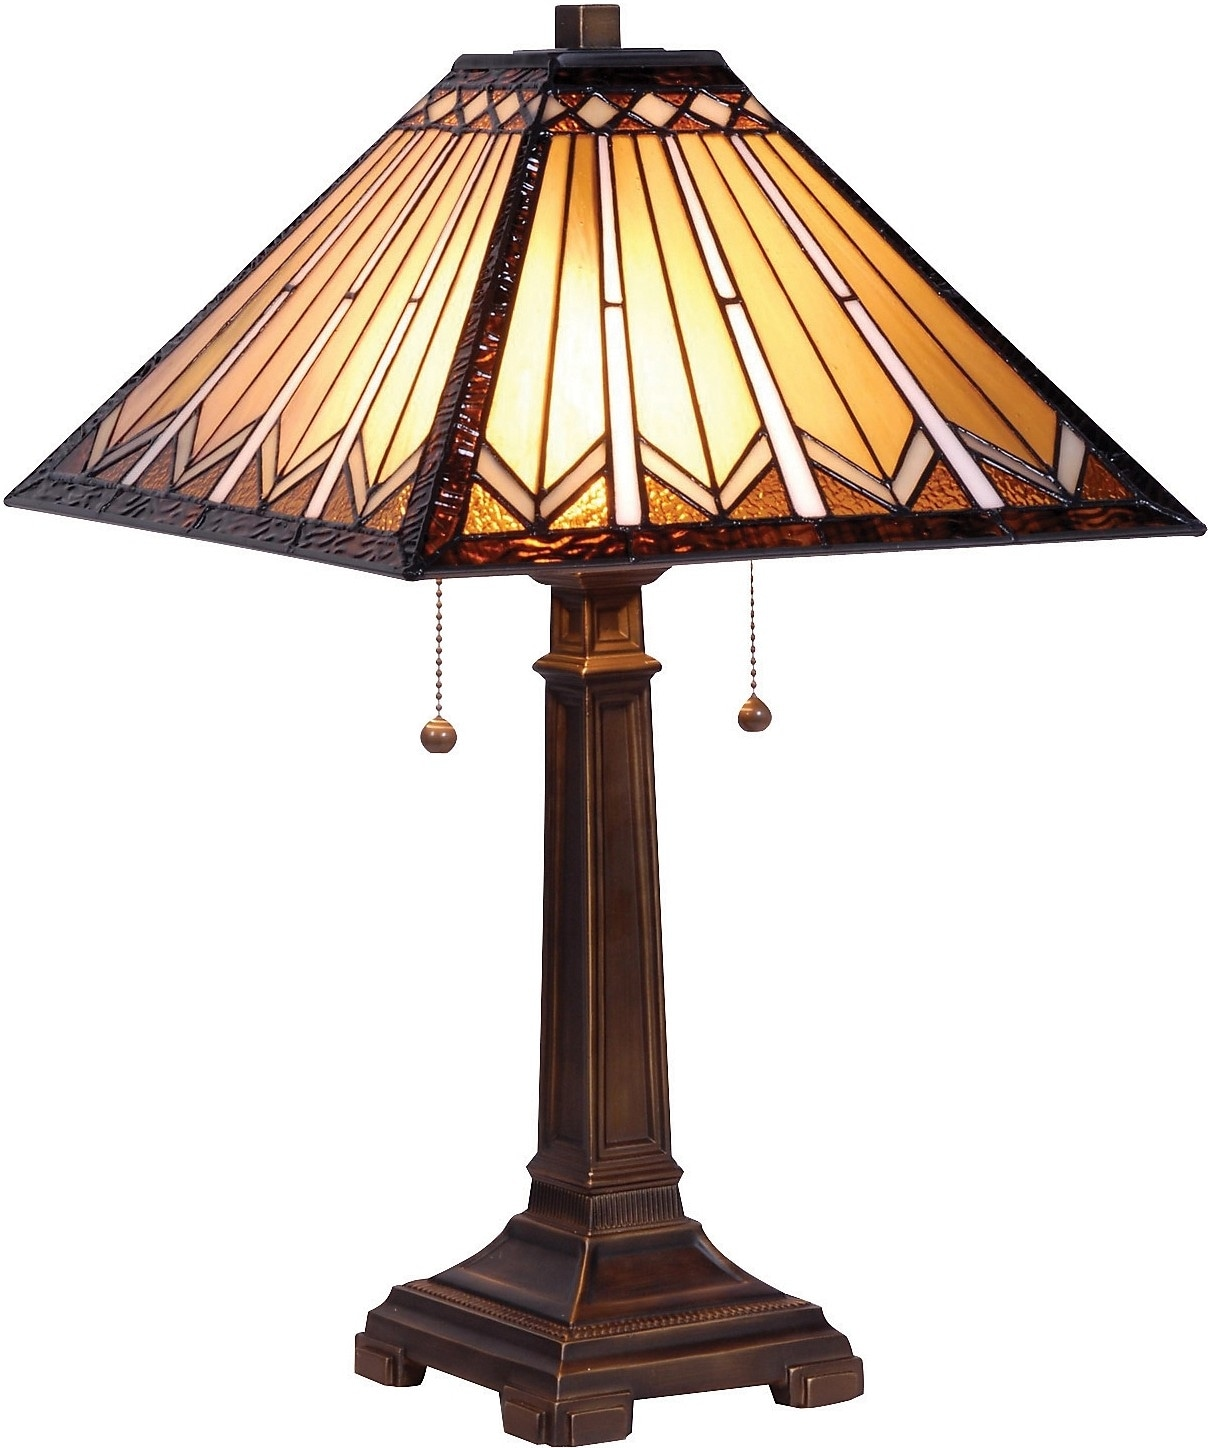 Home Accessories - Danbury Table Lamp with Stained Glass Shade